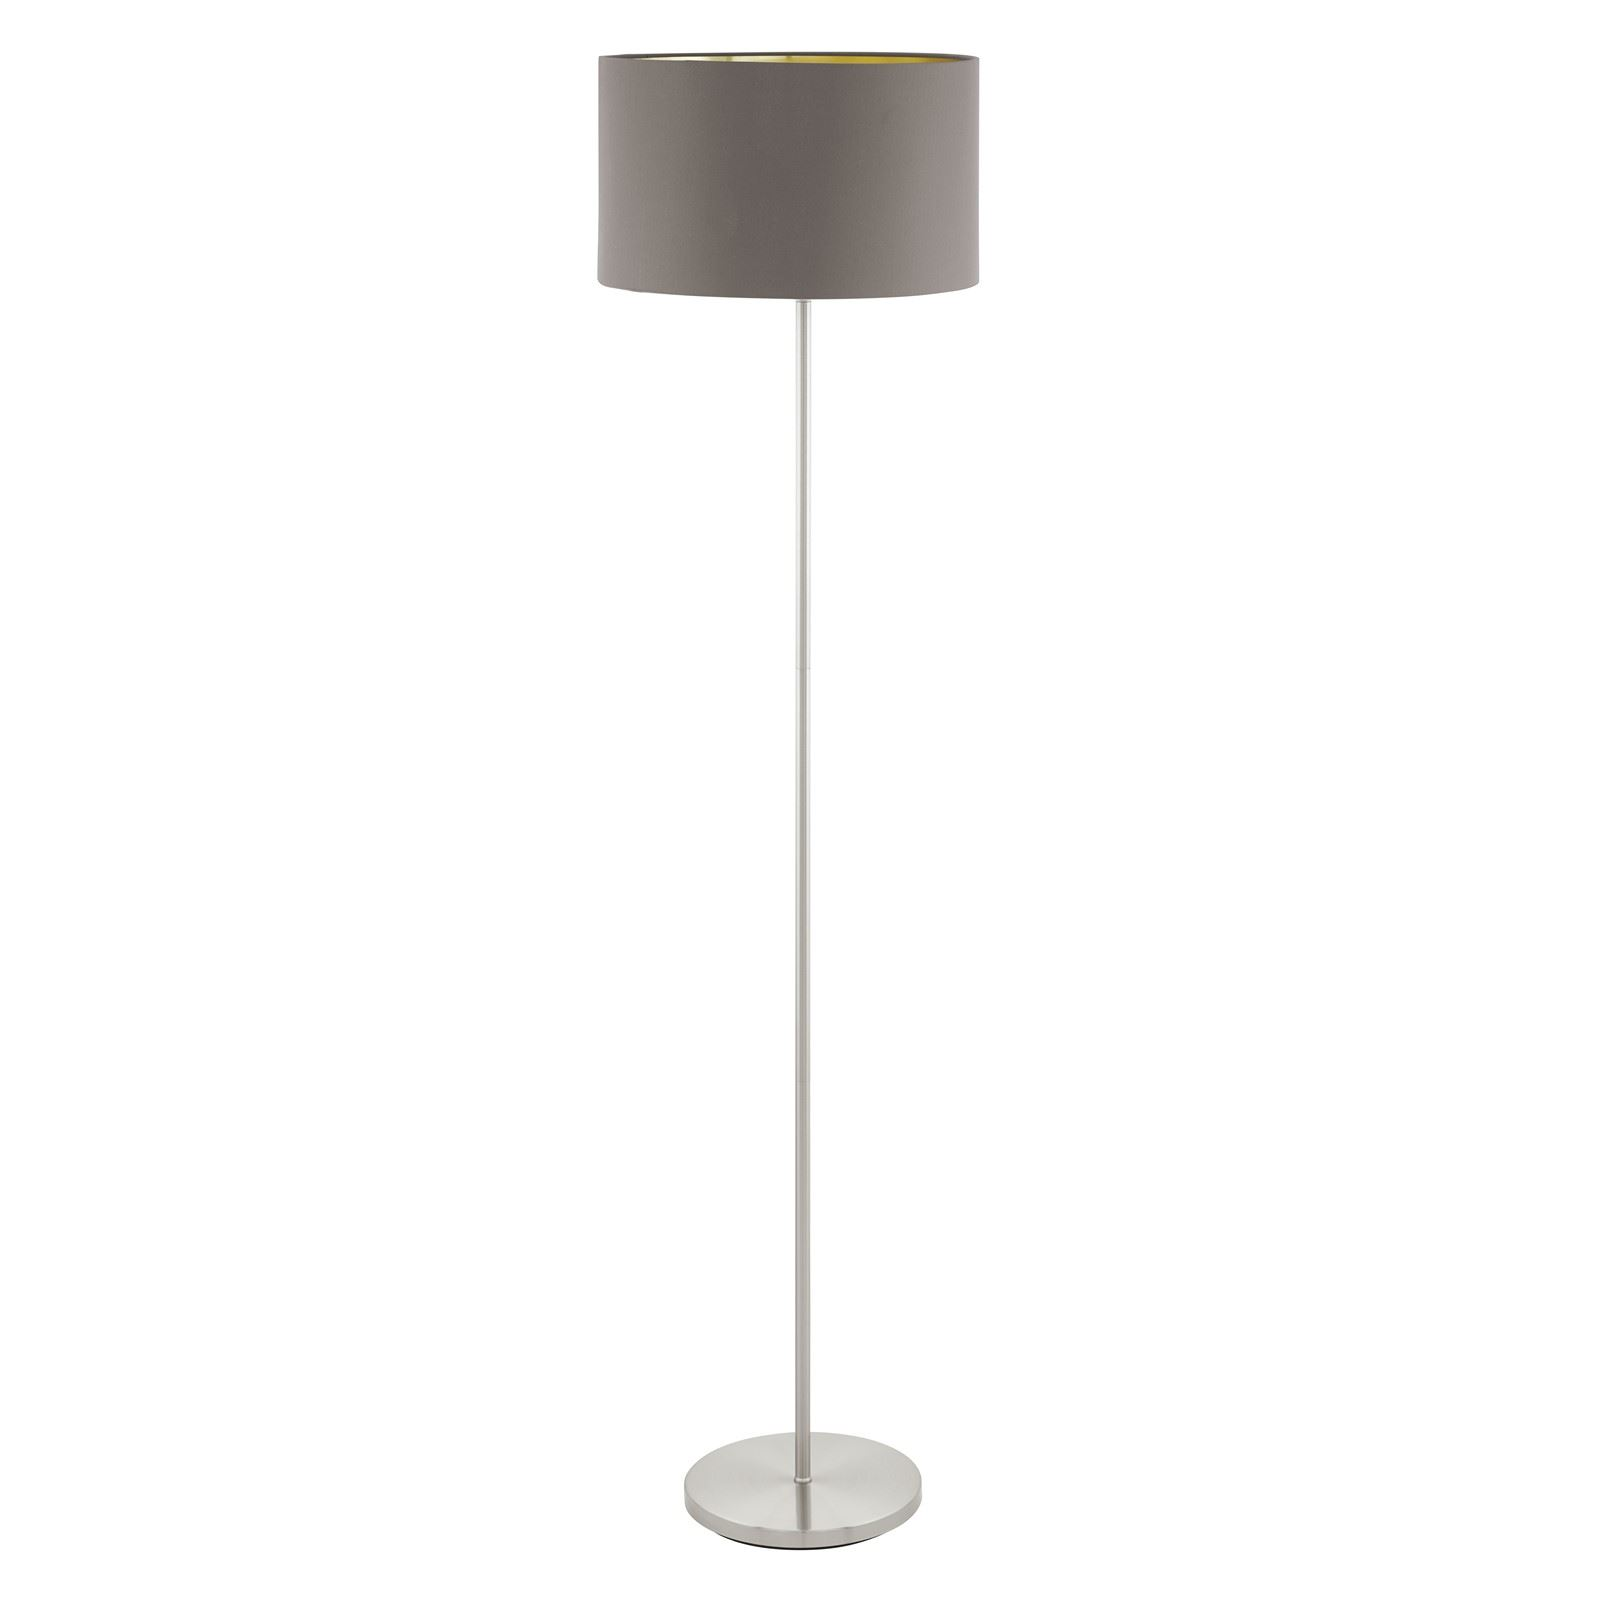 Maserlo Steel Satin Nickel Floor Lamp 1 Light With Cappuccino-Gold Shade